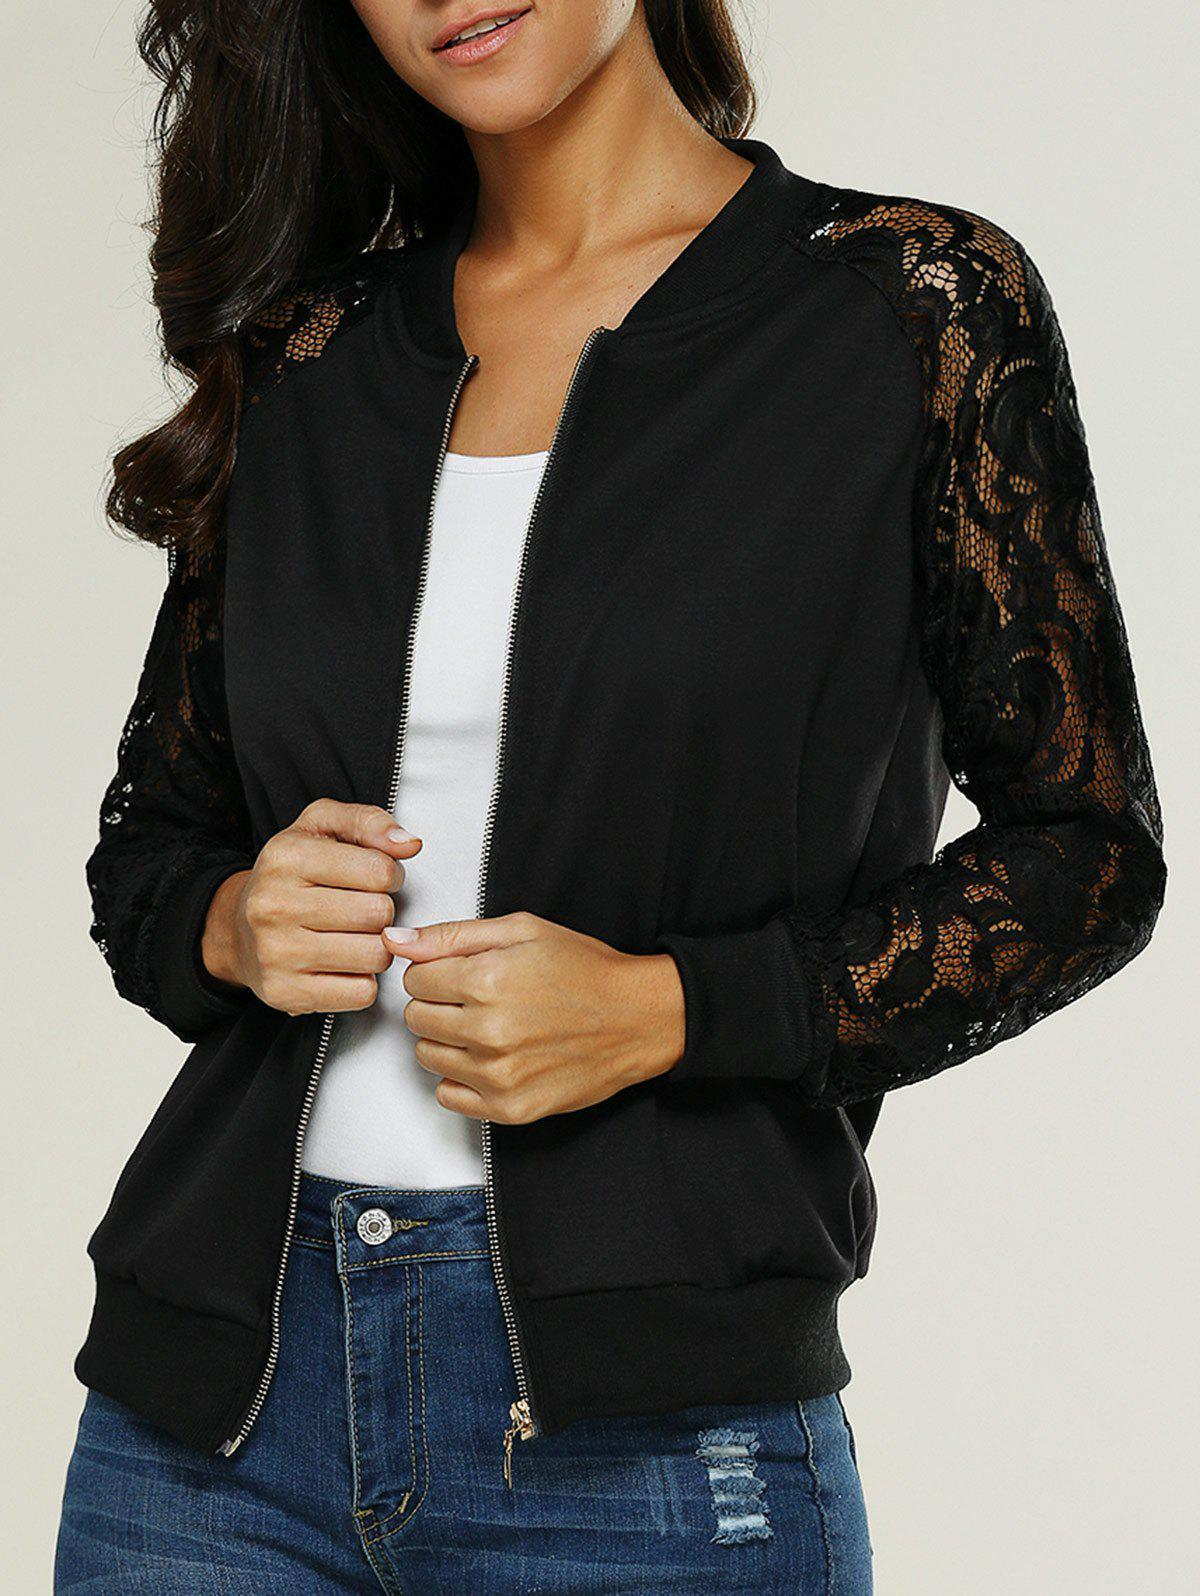 Lace Insert Bomber Zip Up JacketWOMEN<br><br>Size: XL; Color: BLACK; Clothes Type: Jackets; Material: Cotton Blends; Type: Slim; Shirt Length: Regular; Sleeve Length: Full; Collar: Stand-Up Collar; Closure Type: Zipper; Pattern Type: Floral; Embellishment: Lace; Style: Casual; Season: Fall,Summer; Weight: 0.2710kg; Package Contents: 1 X Jacket;